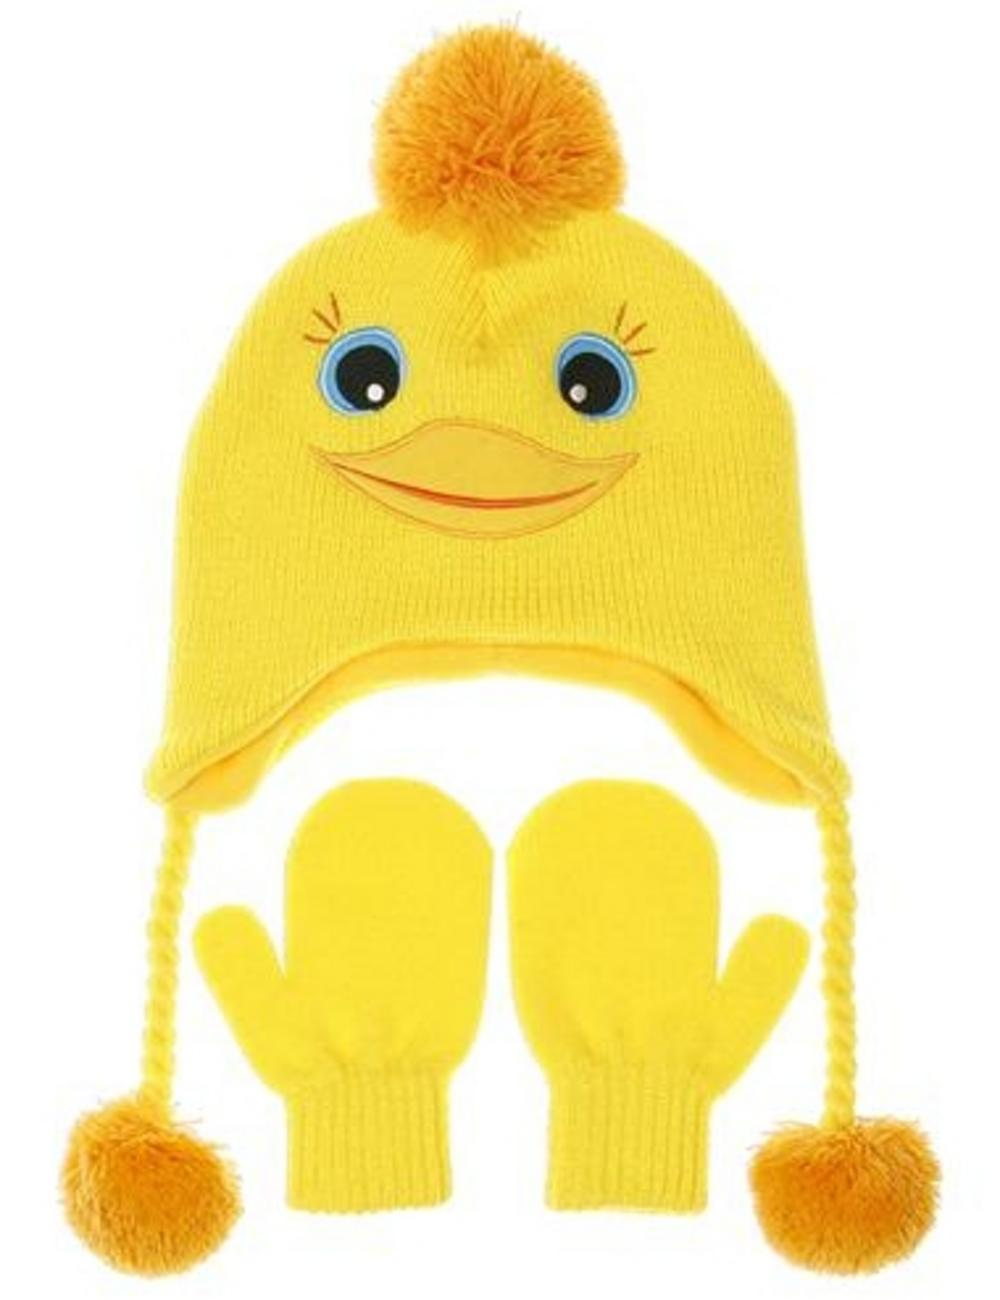 Nuzzles Yellow Duck Hat And Mitten Glove Set - Age 2-5 Years